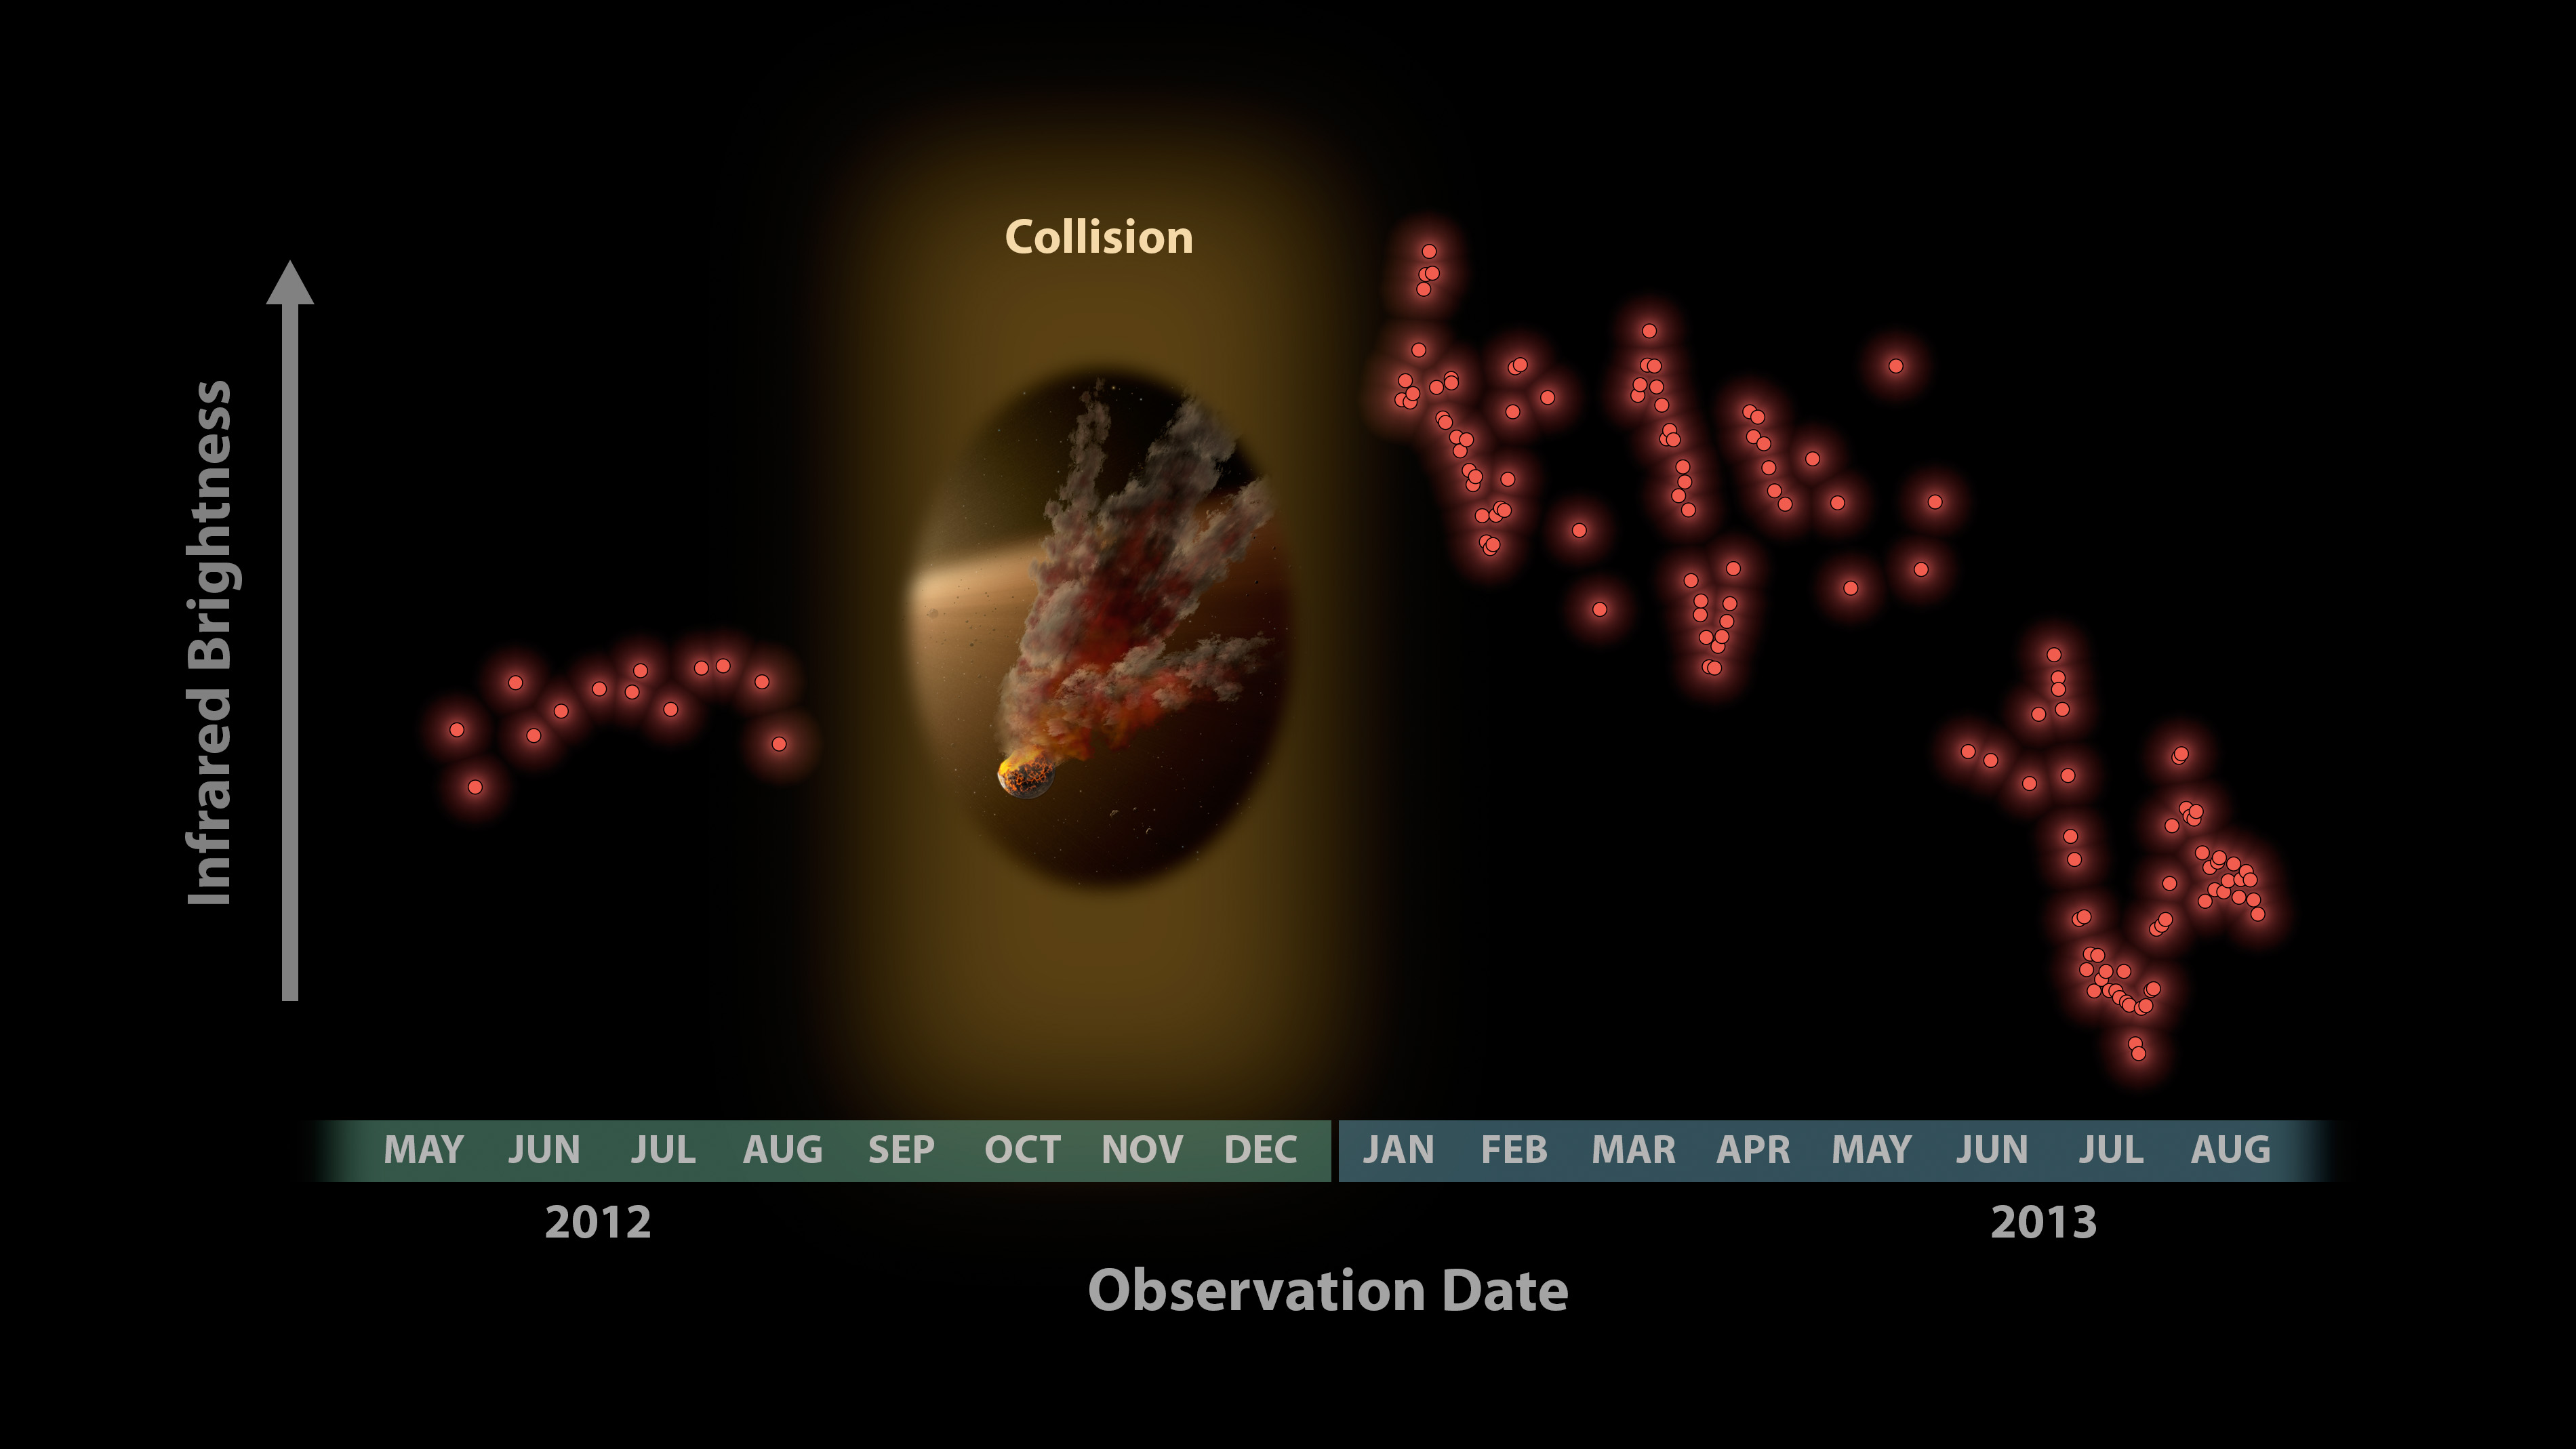 Figure 4:Witnessing a Planetary Wreckage: Astronomers were surprised to see these data from NASA's Spitzer Space Telescope in January 2013, showing a huge eruption of dust around a star called NGC 2547-ID8. In this plot, infrared brightness is represented on the vertical axis, and time on the horizontal axis. The data at left show infrared light from the dust around the star back in 2012. Between 2012 and 2013, Spitzer had to stop observing the star because it was located behind the sun, as seen from Spitzer's Earth-trailing orbit. When Spitzer began watching the star again in January 2013, the astronomers noticed a huge jump in the data. Why the dramatic change? The team says that dust in the star system surged intensely, likely after two large asteroids collided, kicking up fresh dust. The periodic variability of the signal is caused by the remaining dust cloud in orbit around the star. This dust cloud is elongated, so the amount of infrared signal it produces changes as it circles the star from our point of view. The infrared signal is decreasing over time as dust from the collision is ground down to finer sizes and blown of the system.  Image credit: NASA/JPL-Caltech/University of Arizona